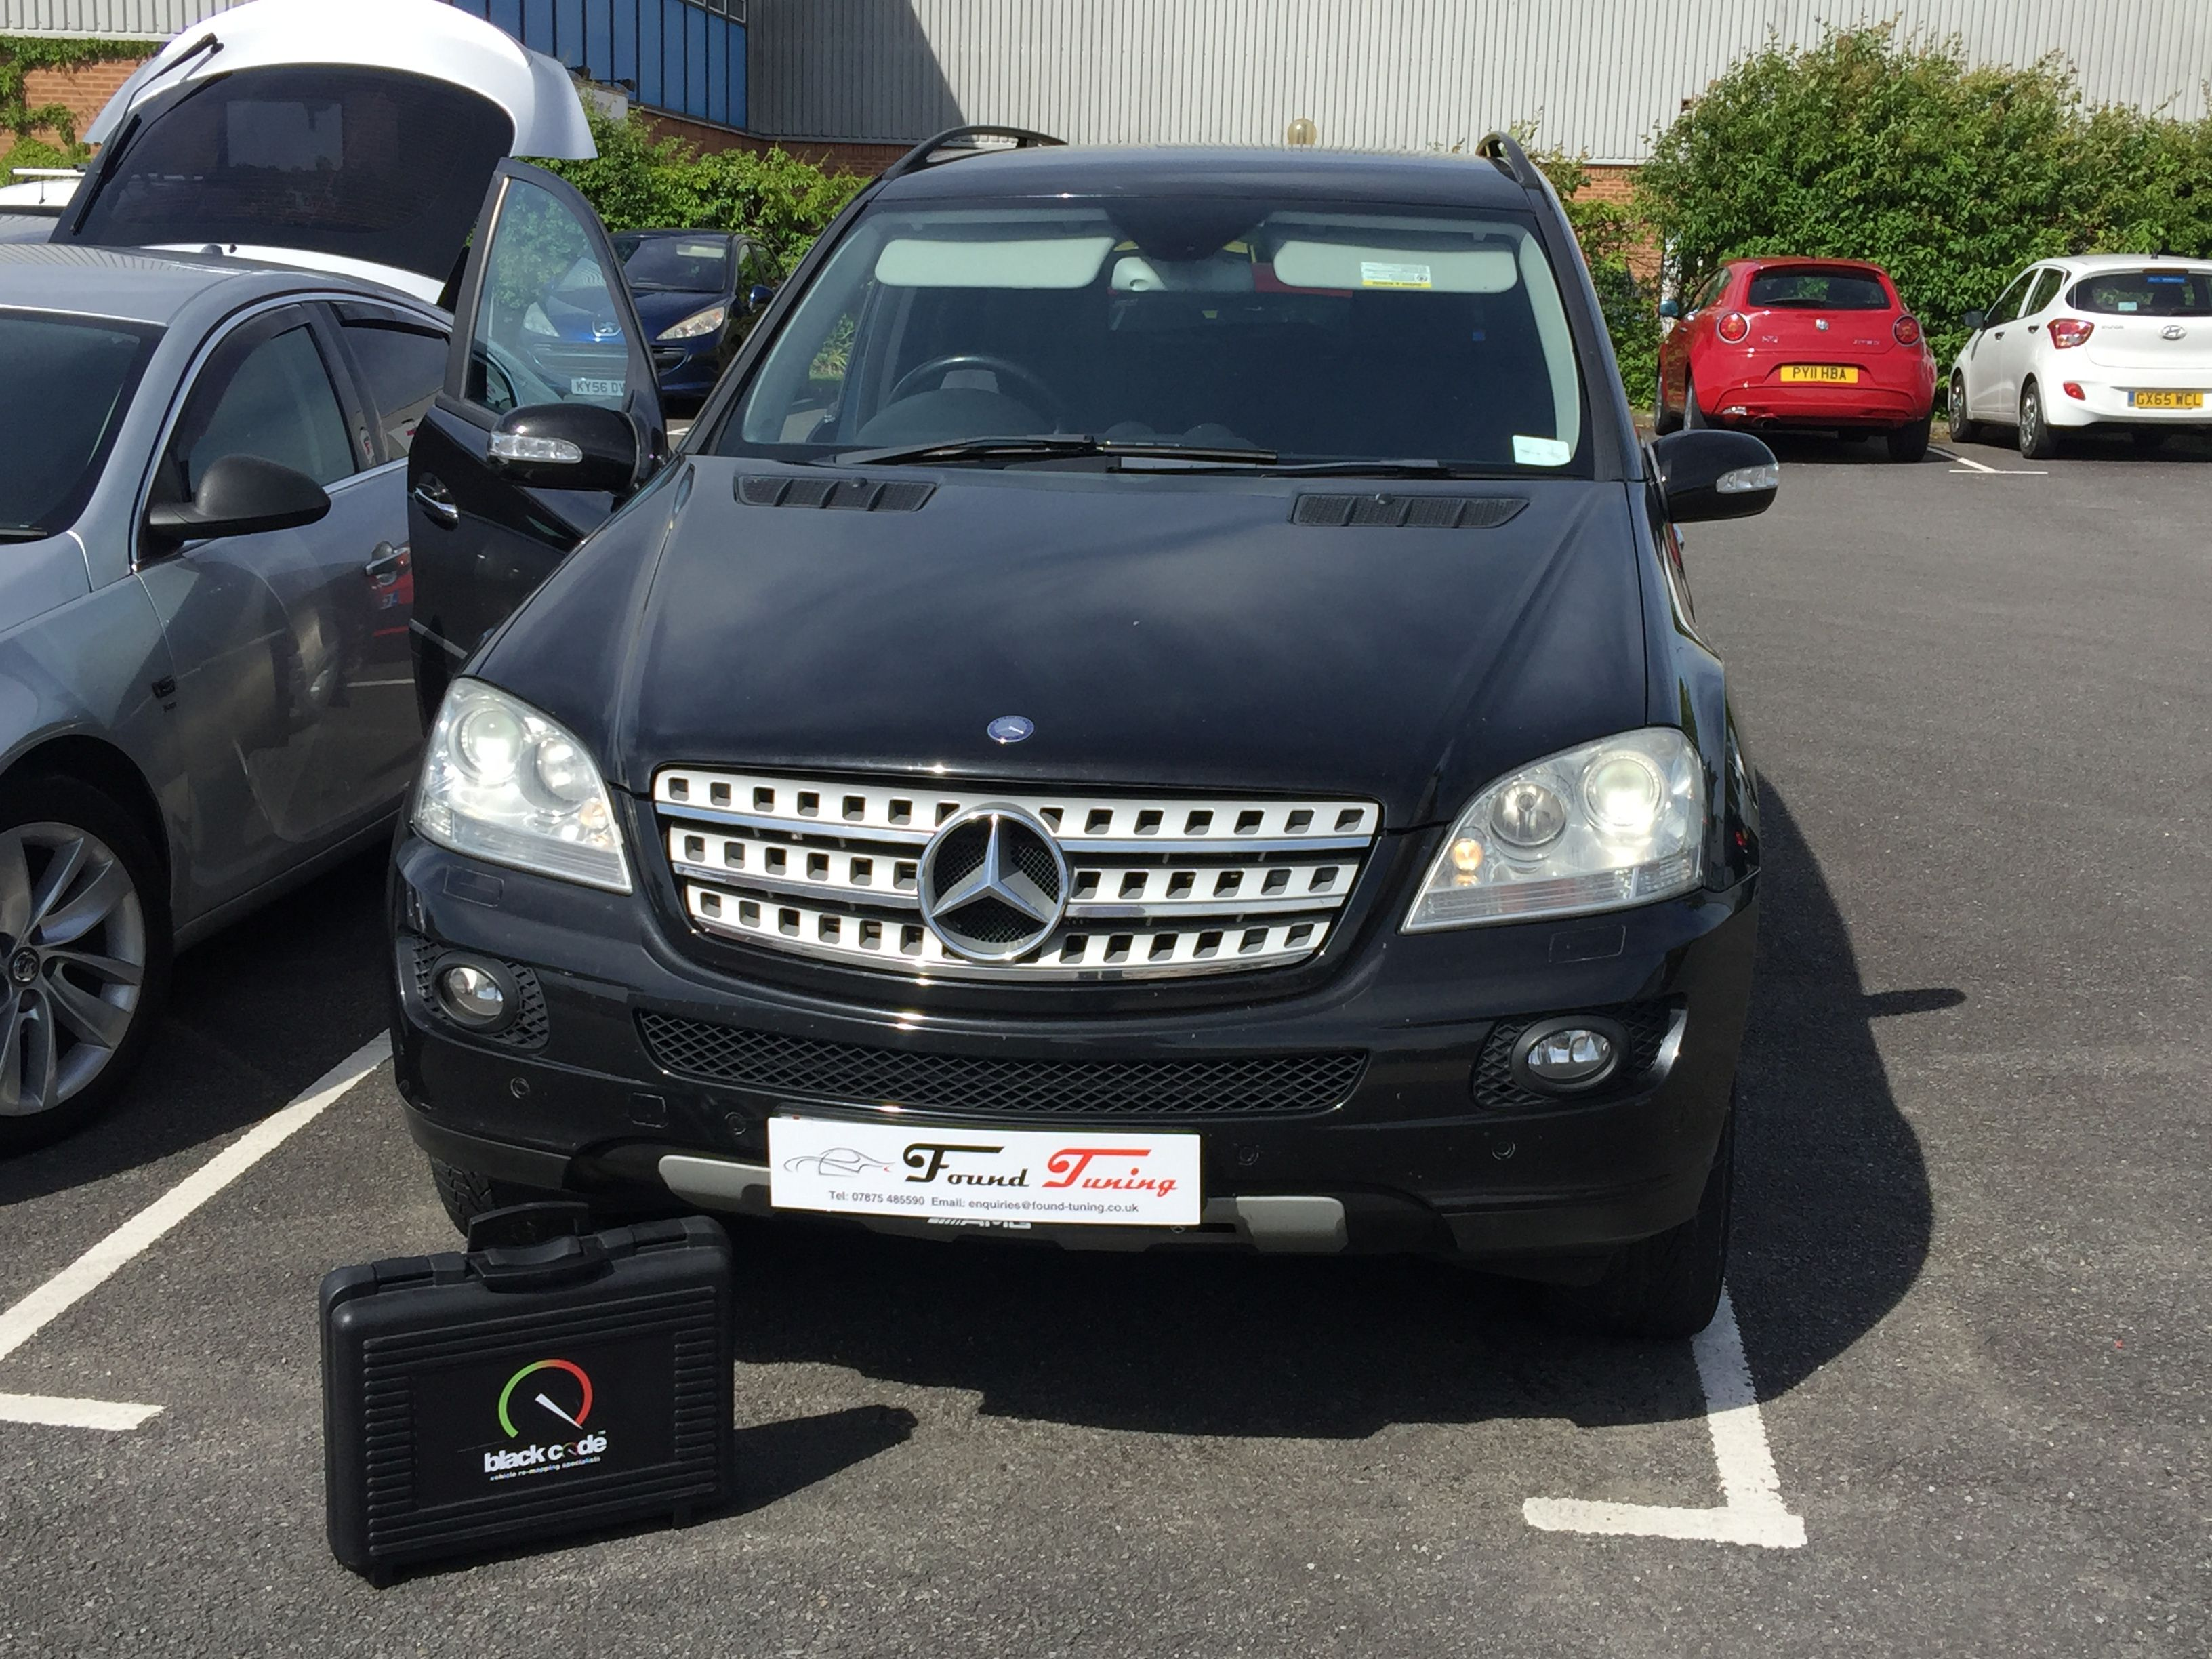 Mercedes ML320 for a Found Tuning performance remap to provide the extra  BHP and torque for